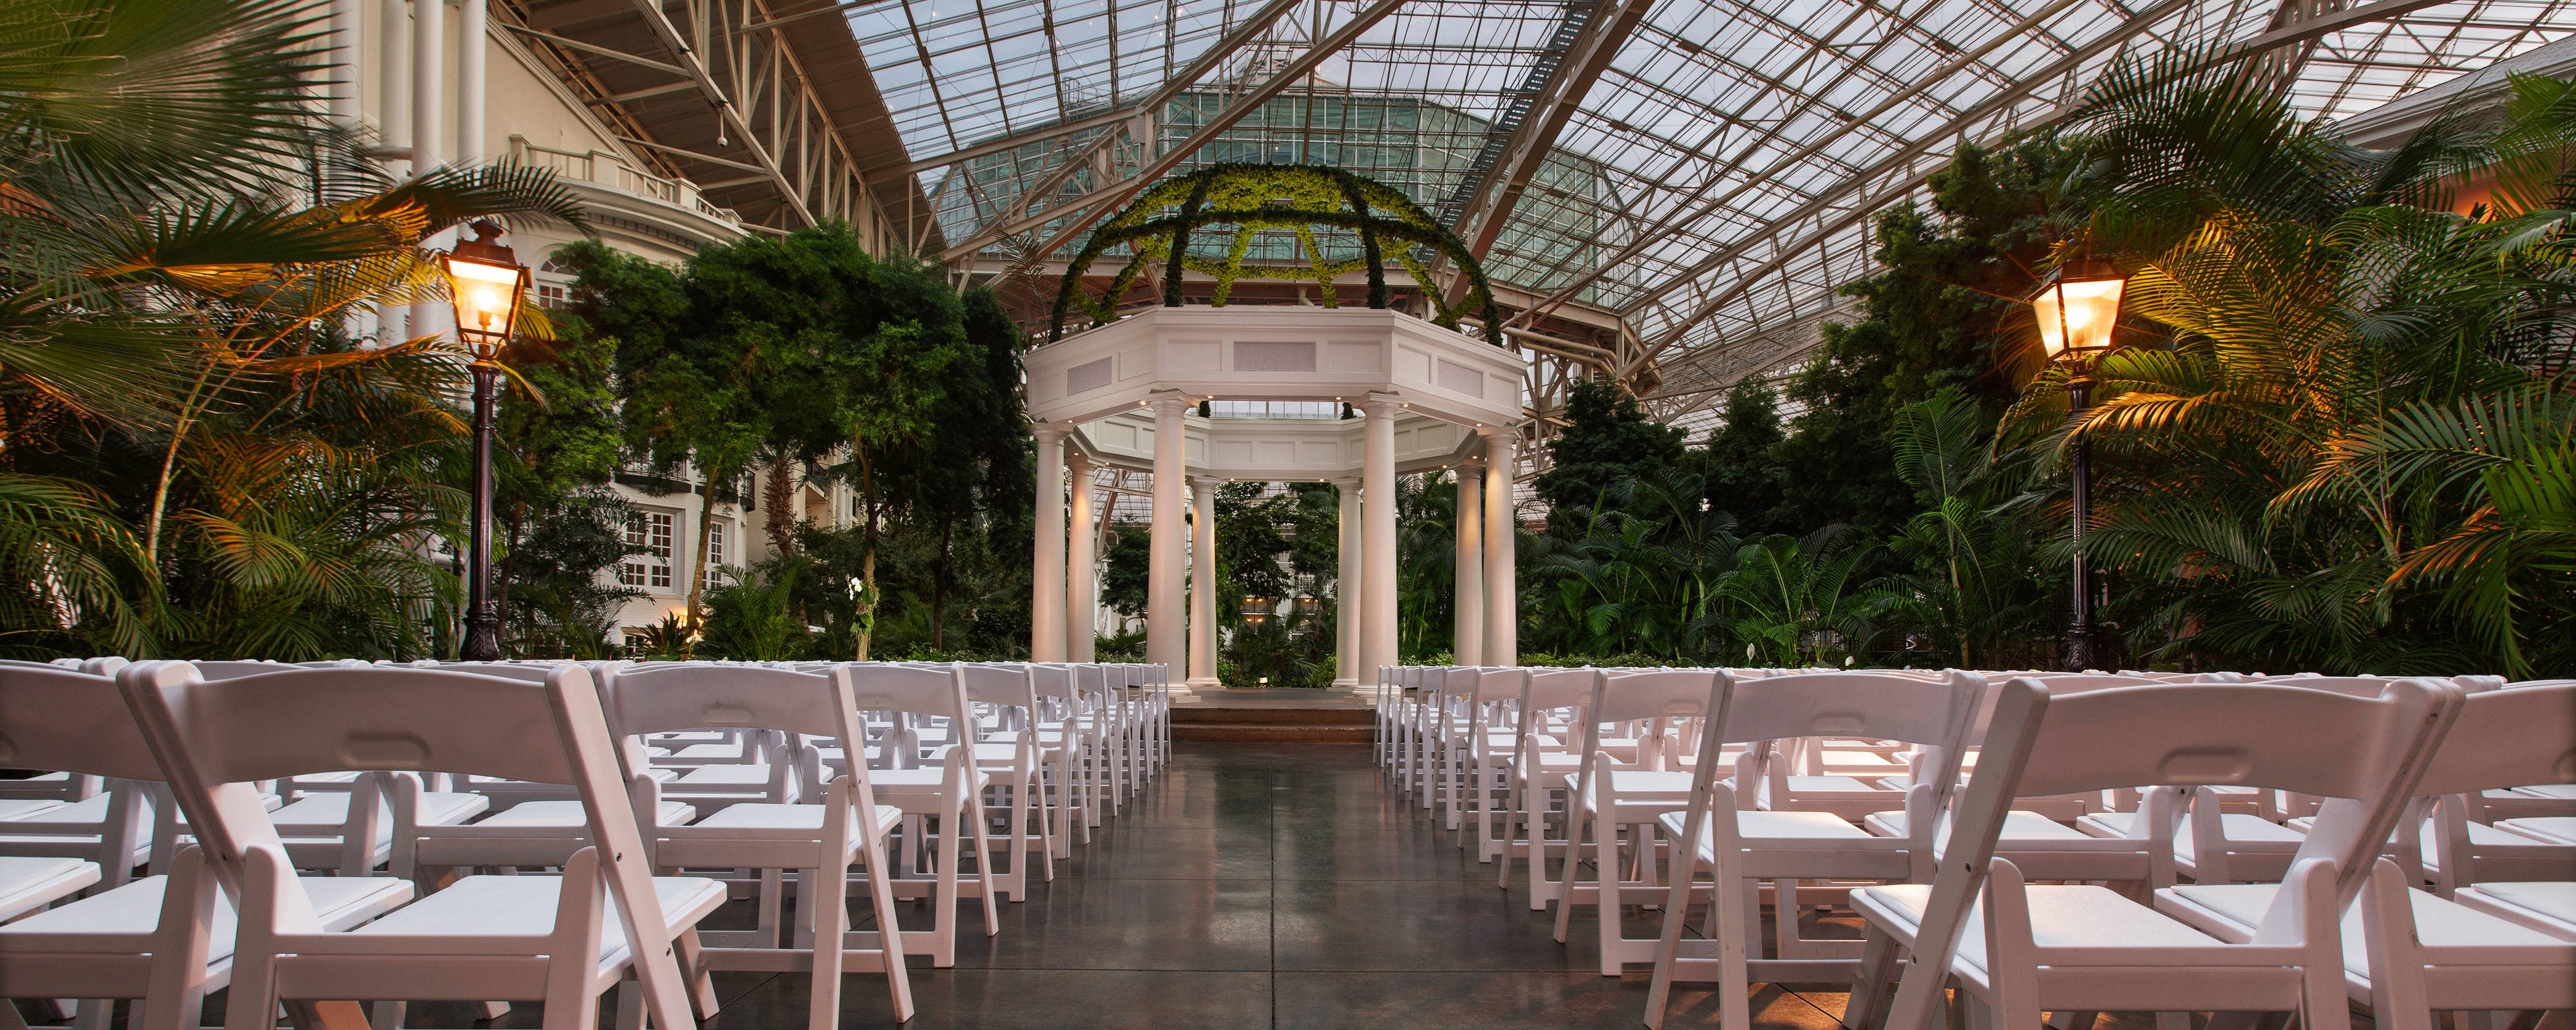 Wedding Venues In Nashville Tn Gaylord Opryland Resort Amp Convention Center